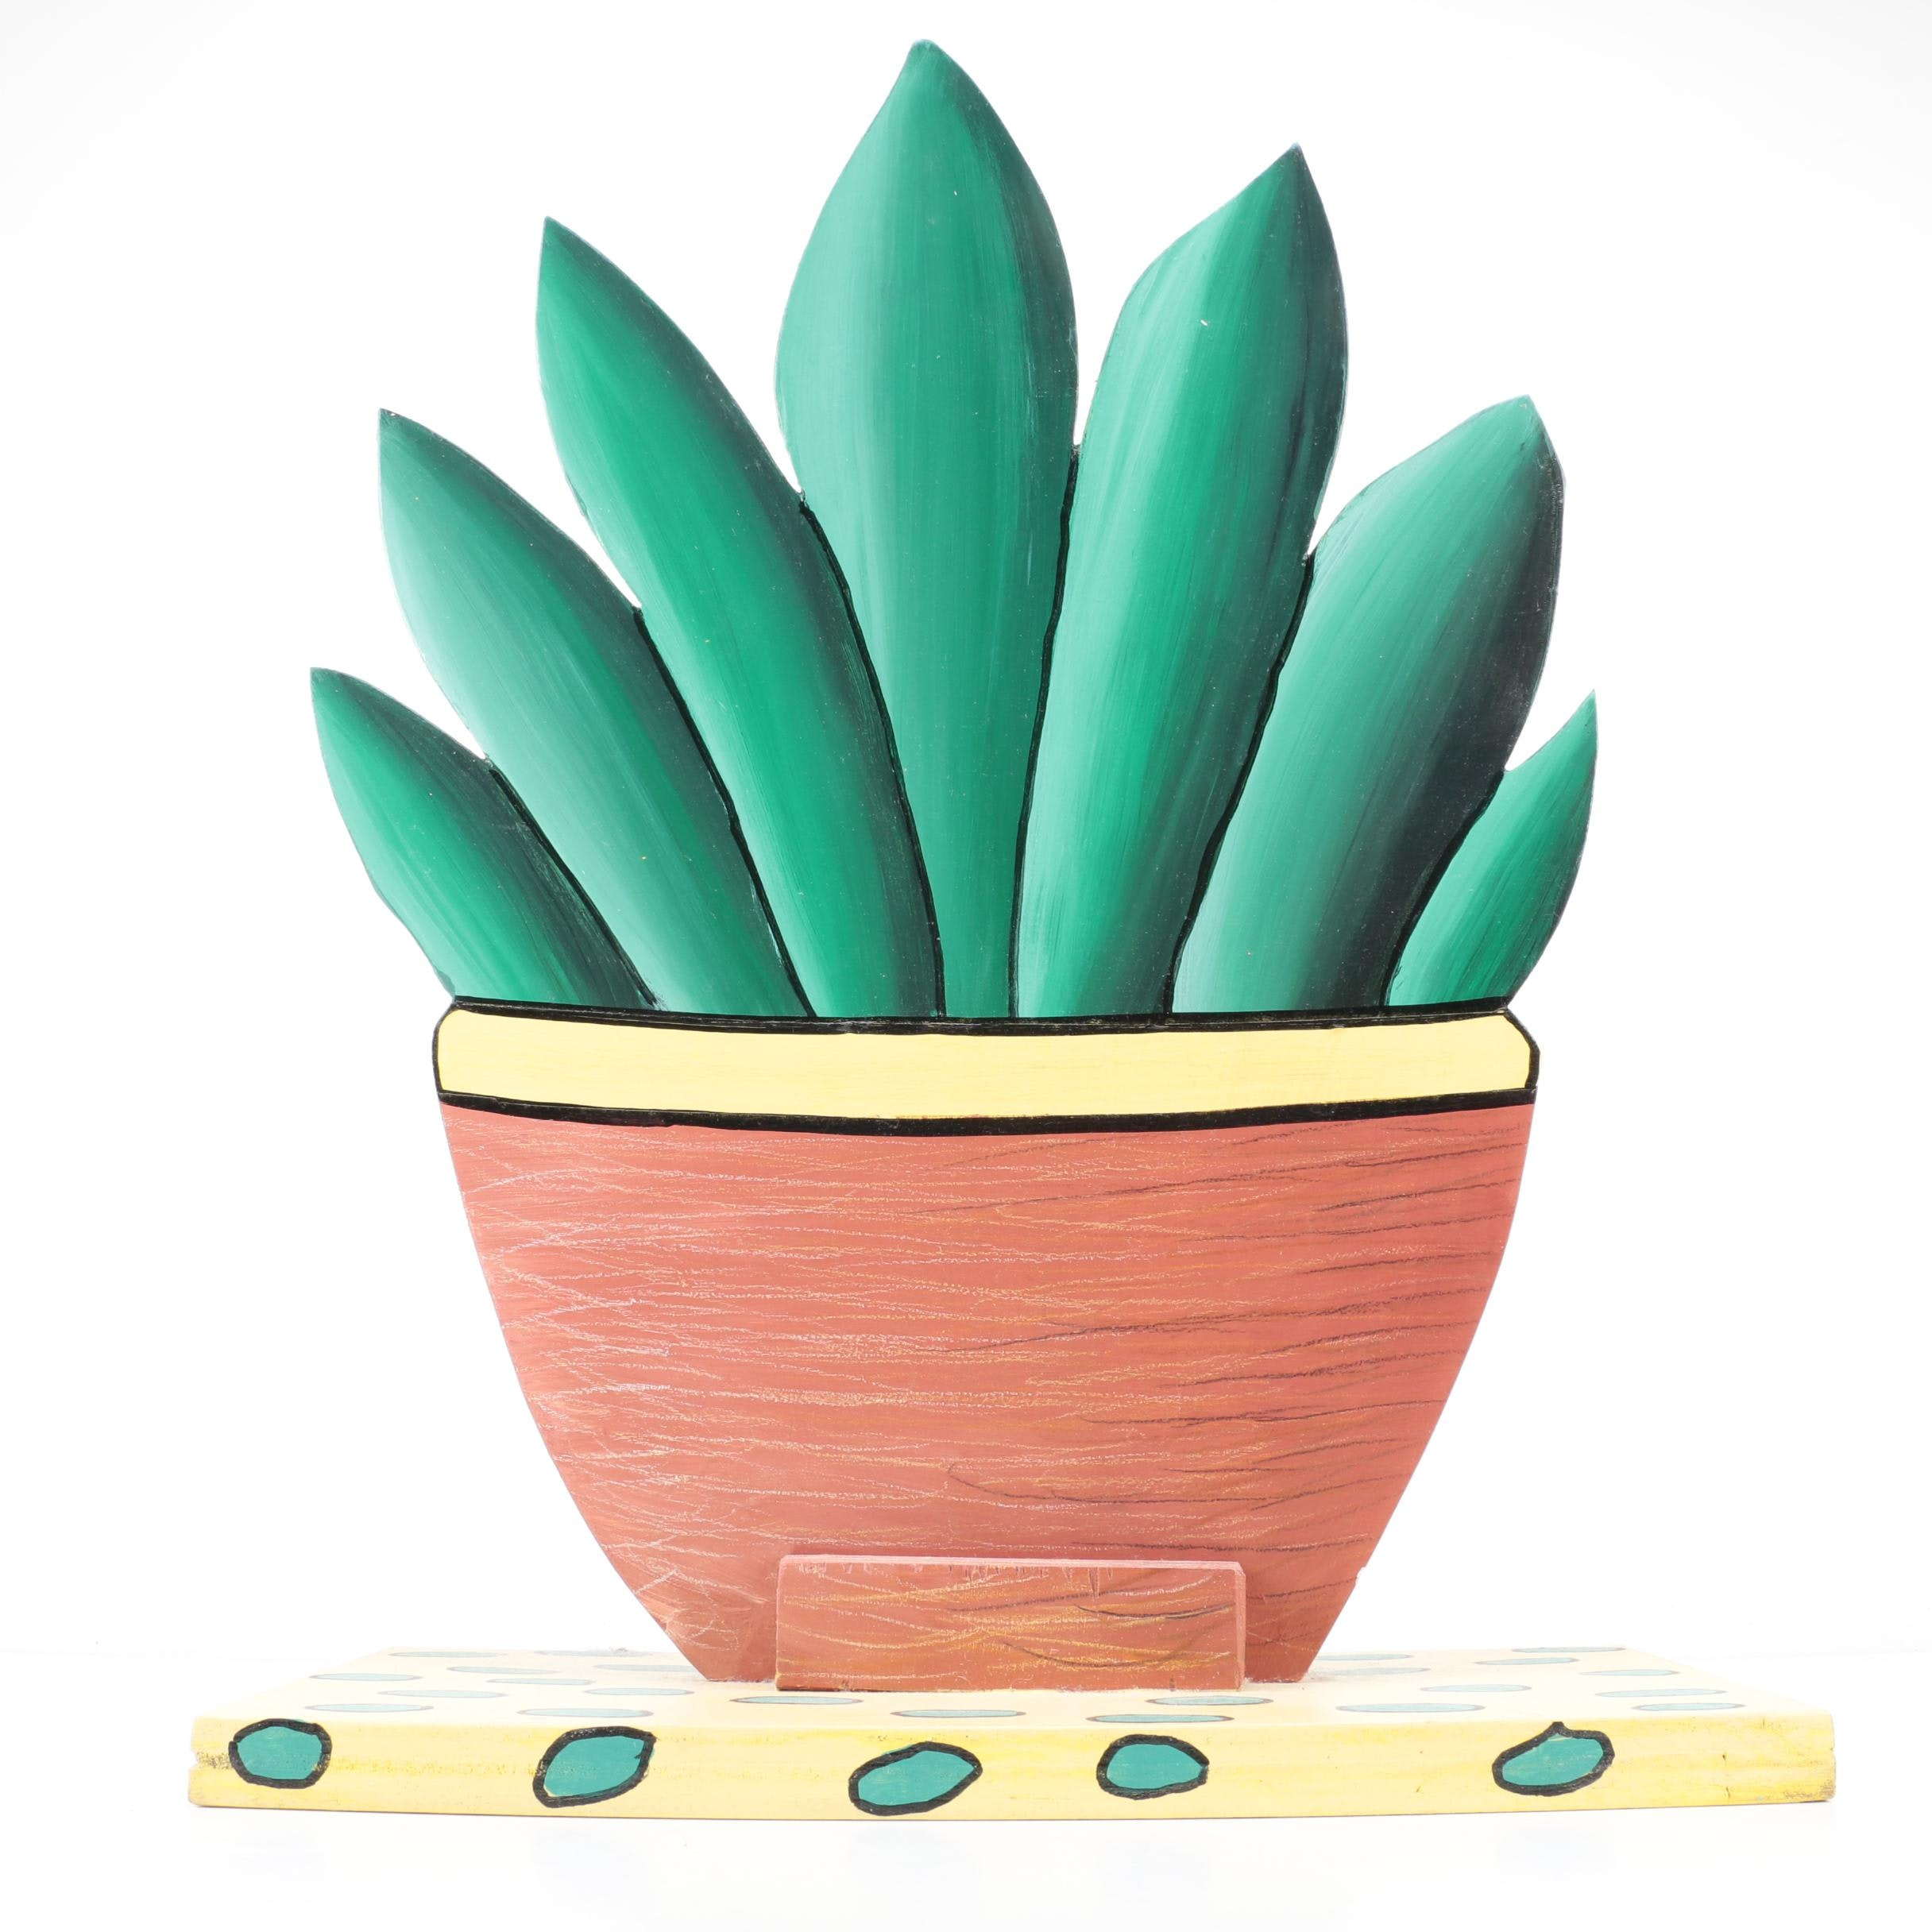 Painted Wooden Potted Plant